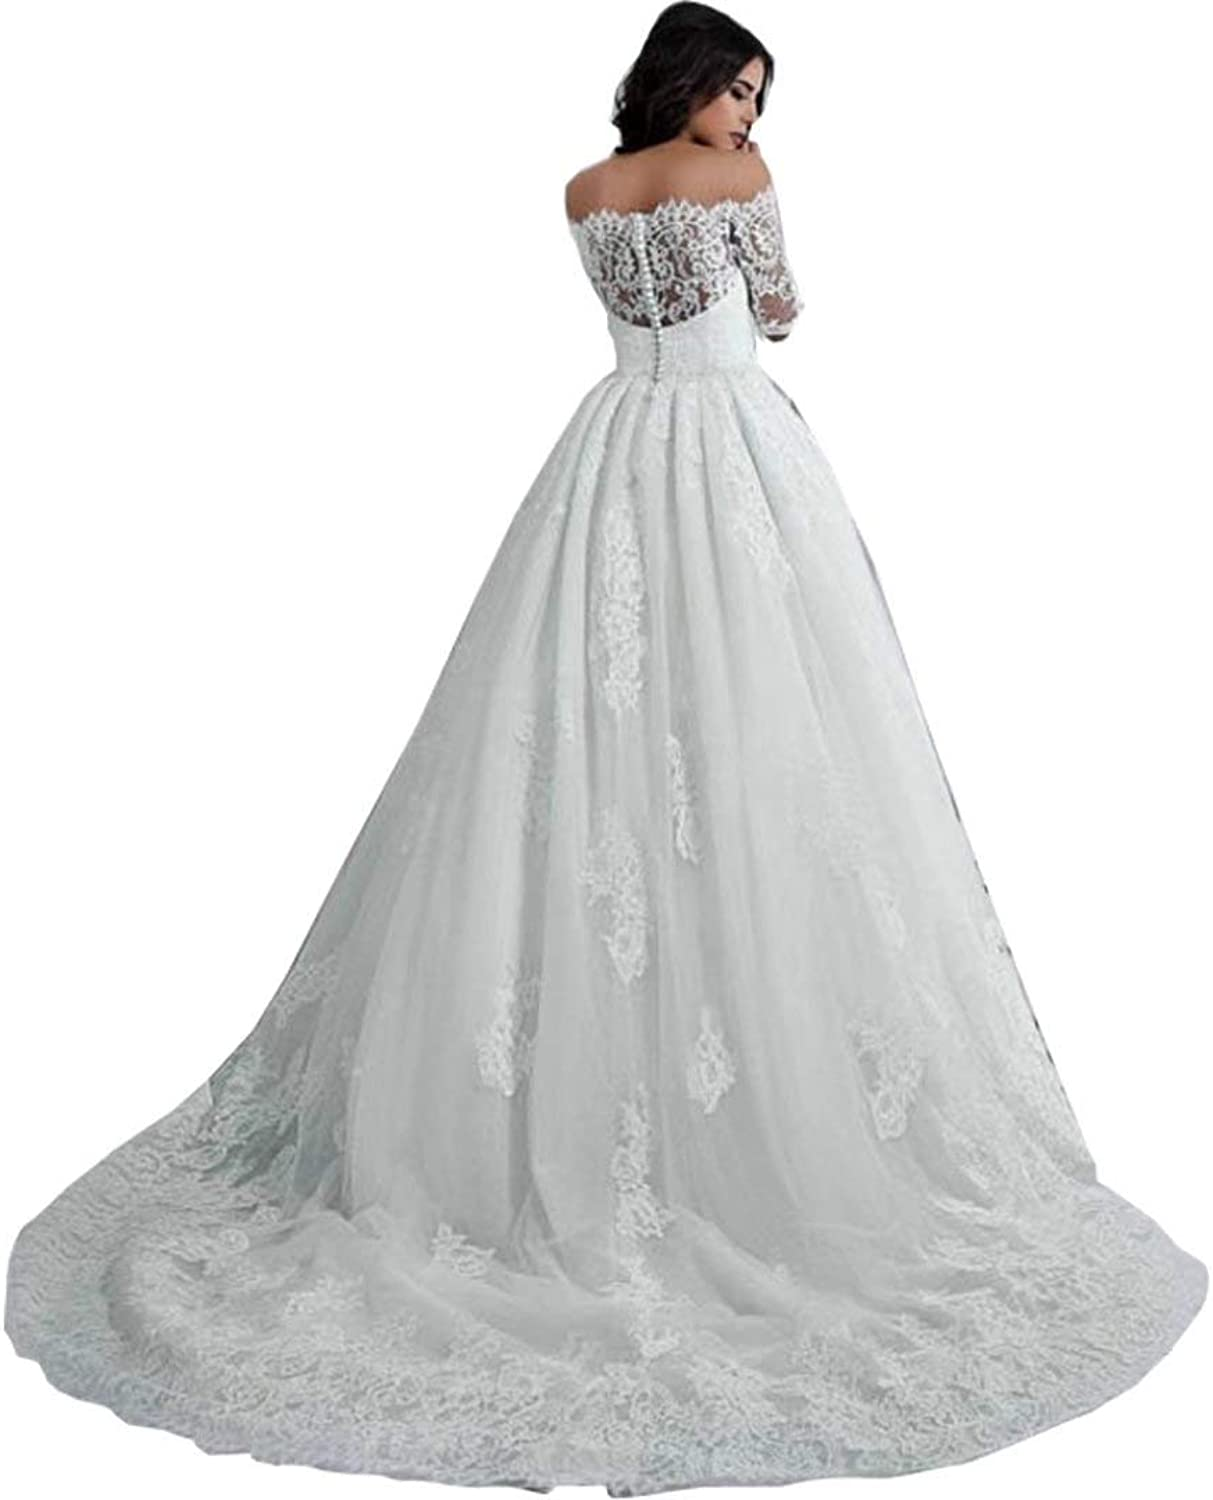 Yilian Sexy Half Sleeves Back Button Ruffles Bridal Gowns Off Shoulder Lace Ball Gown Wedding Dresses